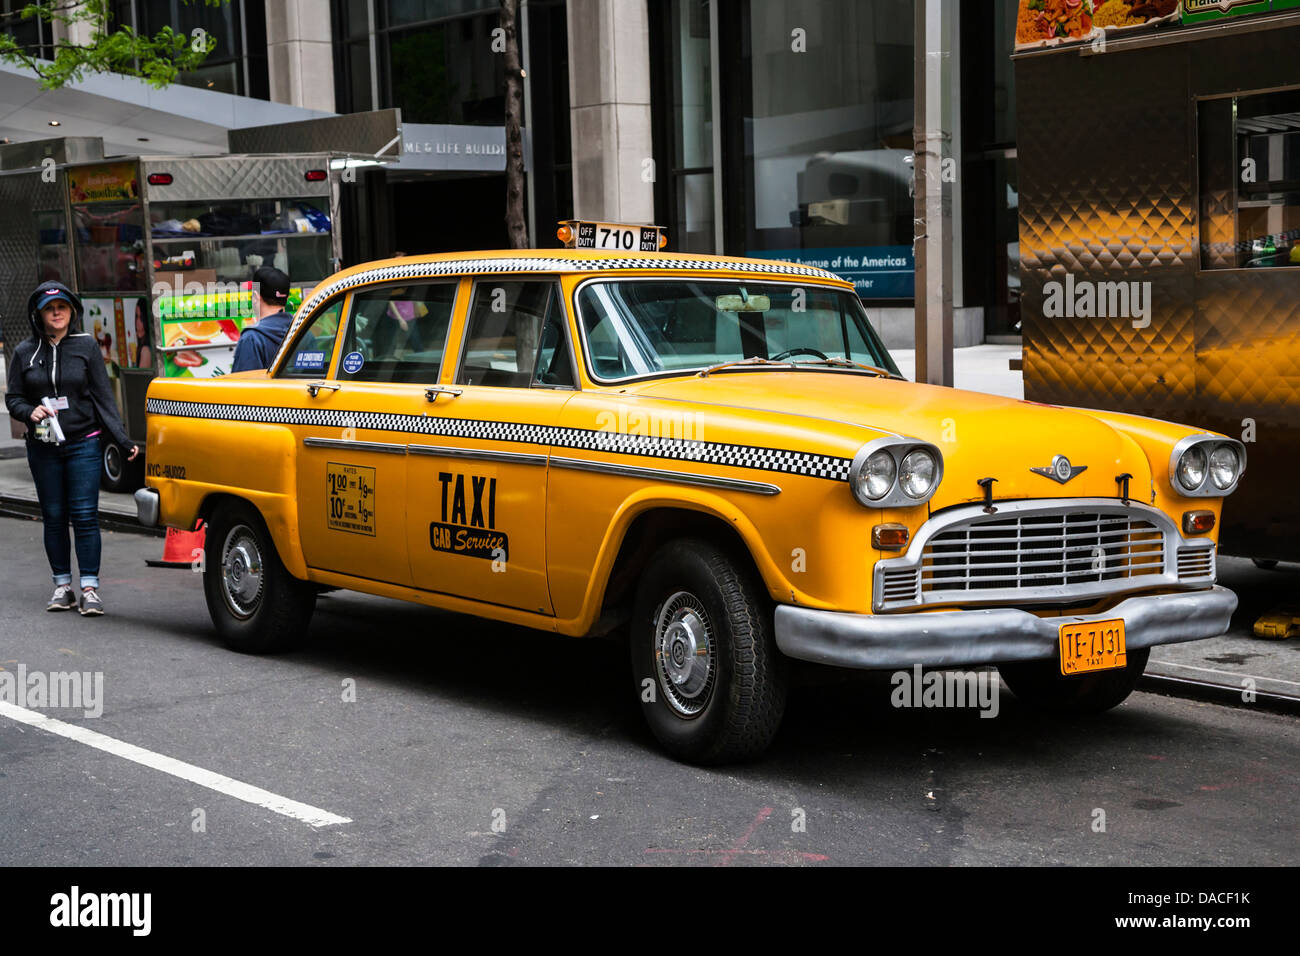 Vintage gelb New York Taxi, NYC, USA. Stockbild